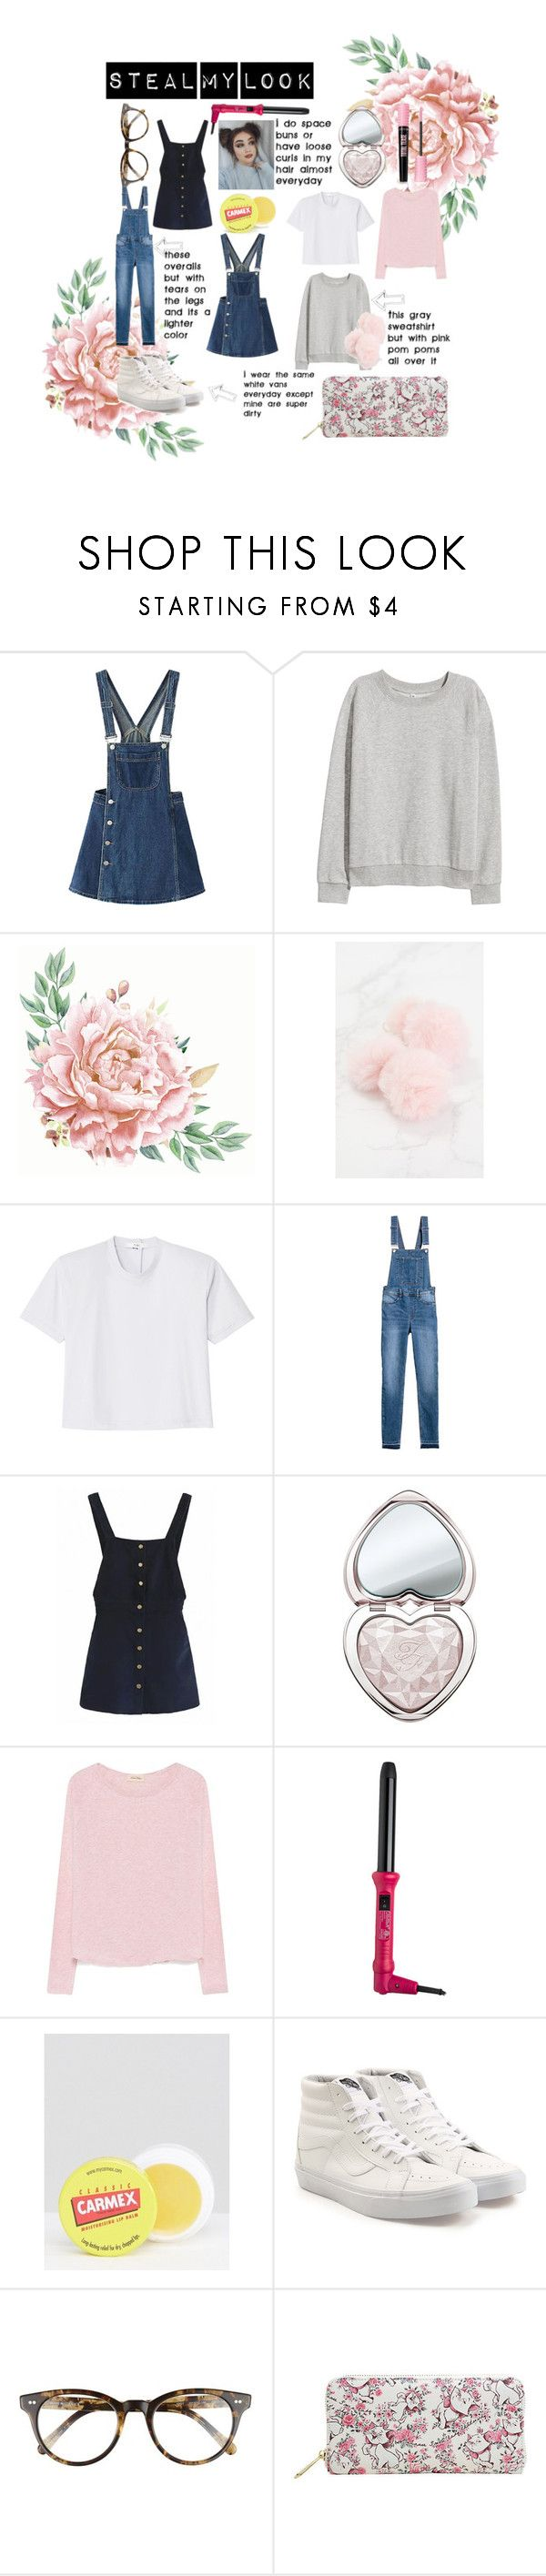 """steal my look <3"" by reagan-e-alexander on Polyvore featuring WithChic, H&M, TIBI, Too Faced Cosmetics, American Vintage, Royale, Carmex, Vans and Corinne McCormack"